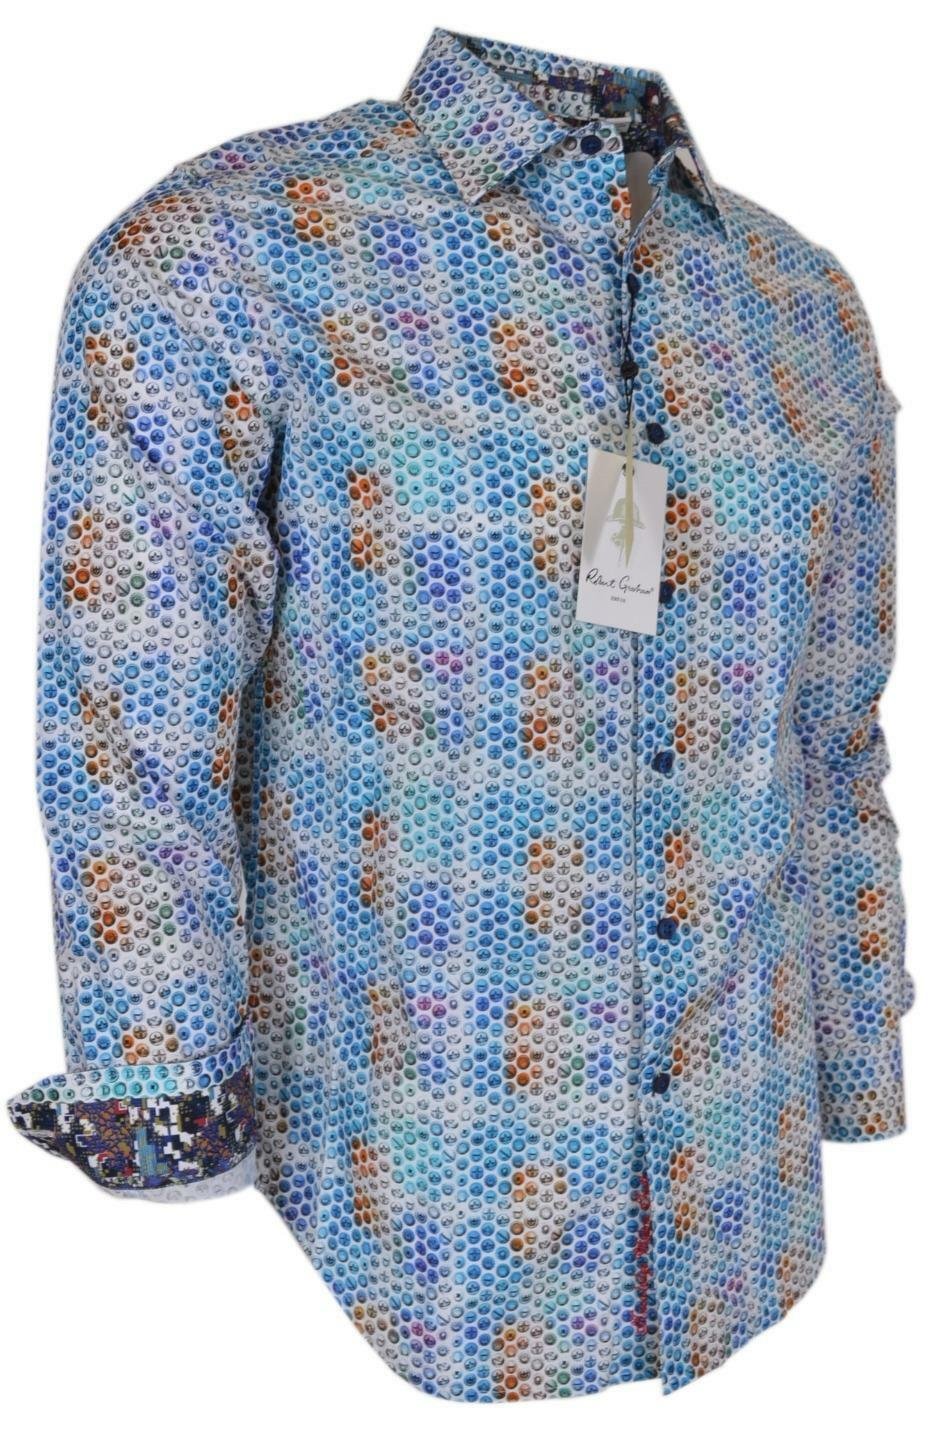 NEW Robert Graham Men's  NUTS & BOLTS Cotton Button Down Sports Dress Shirt